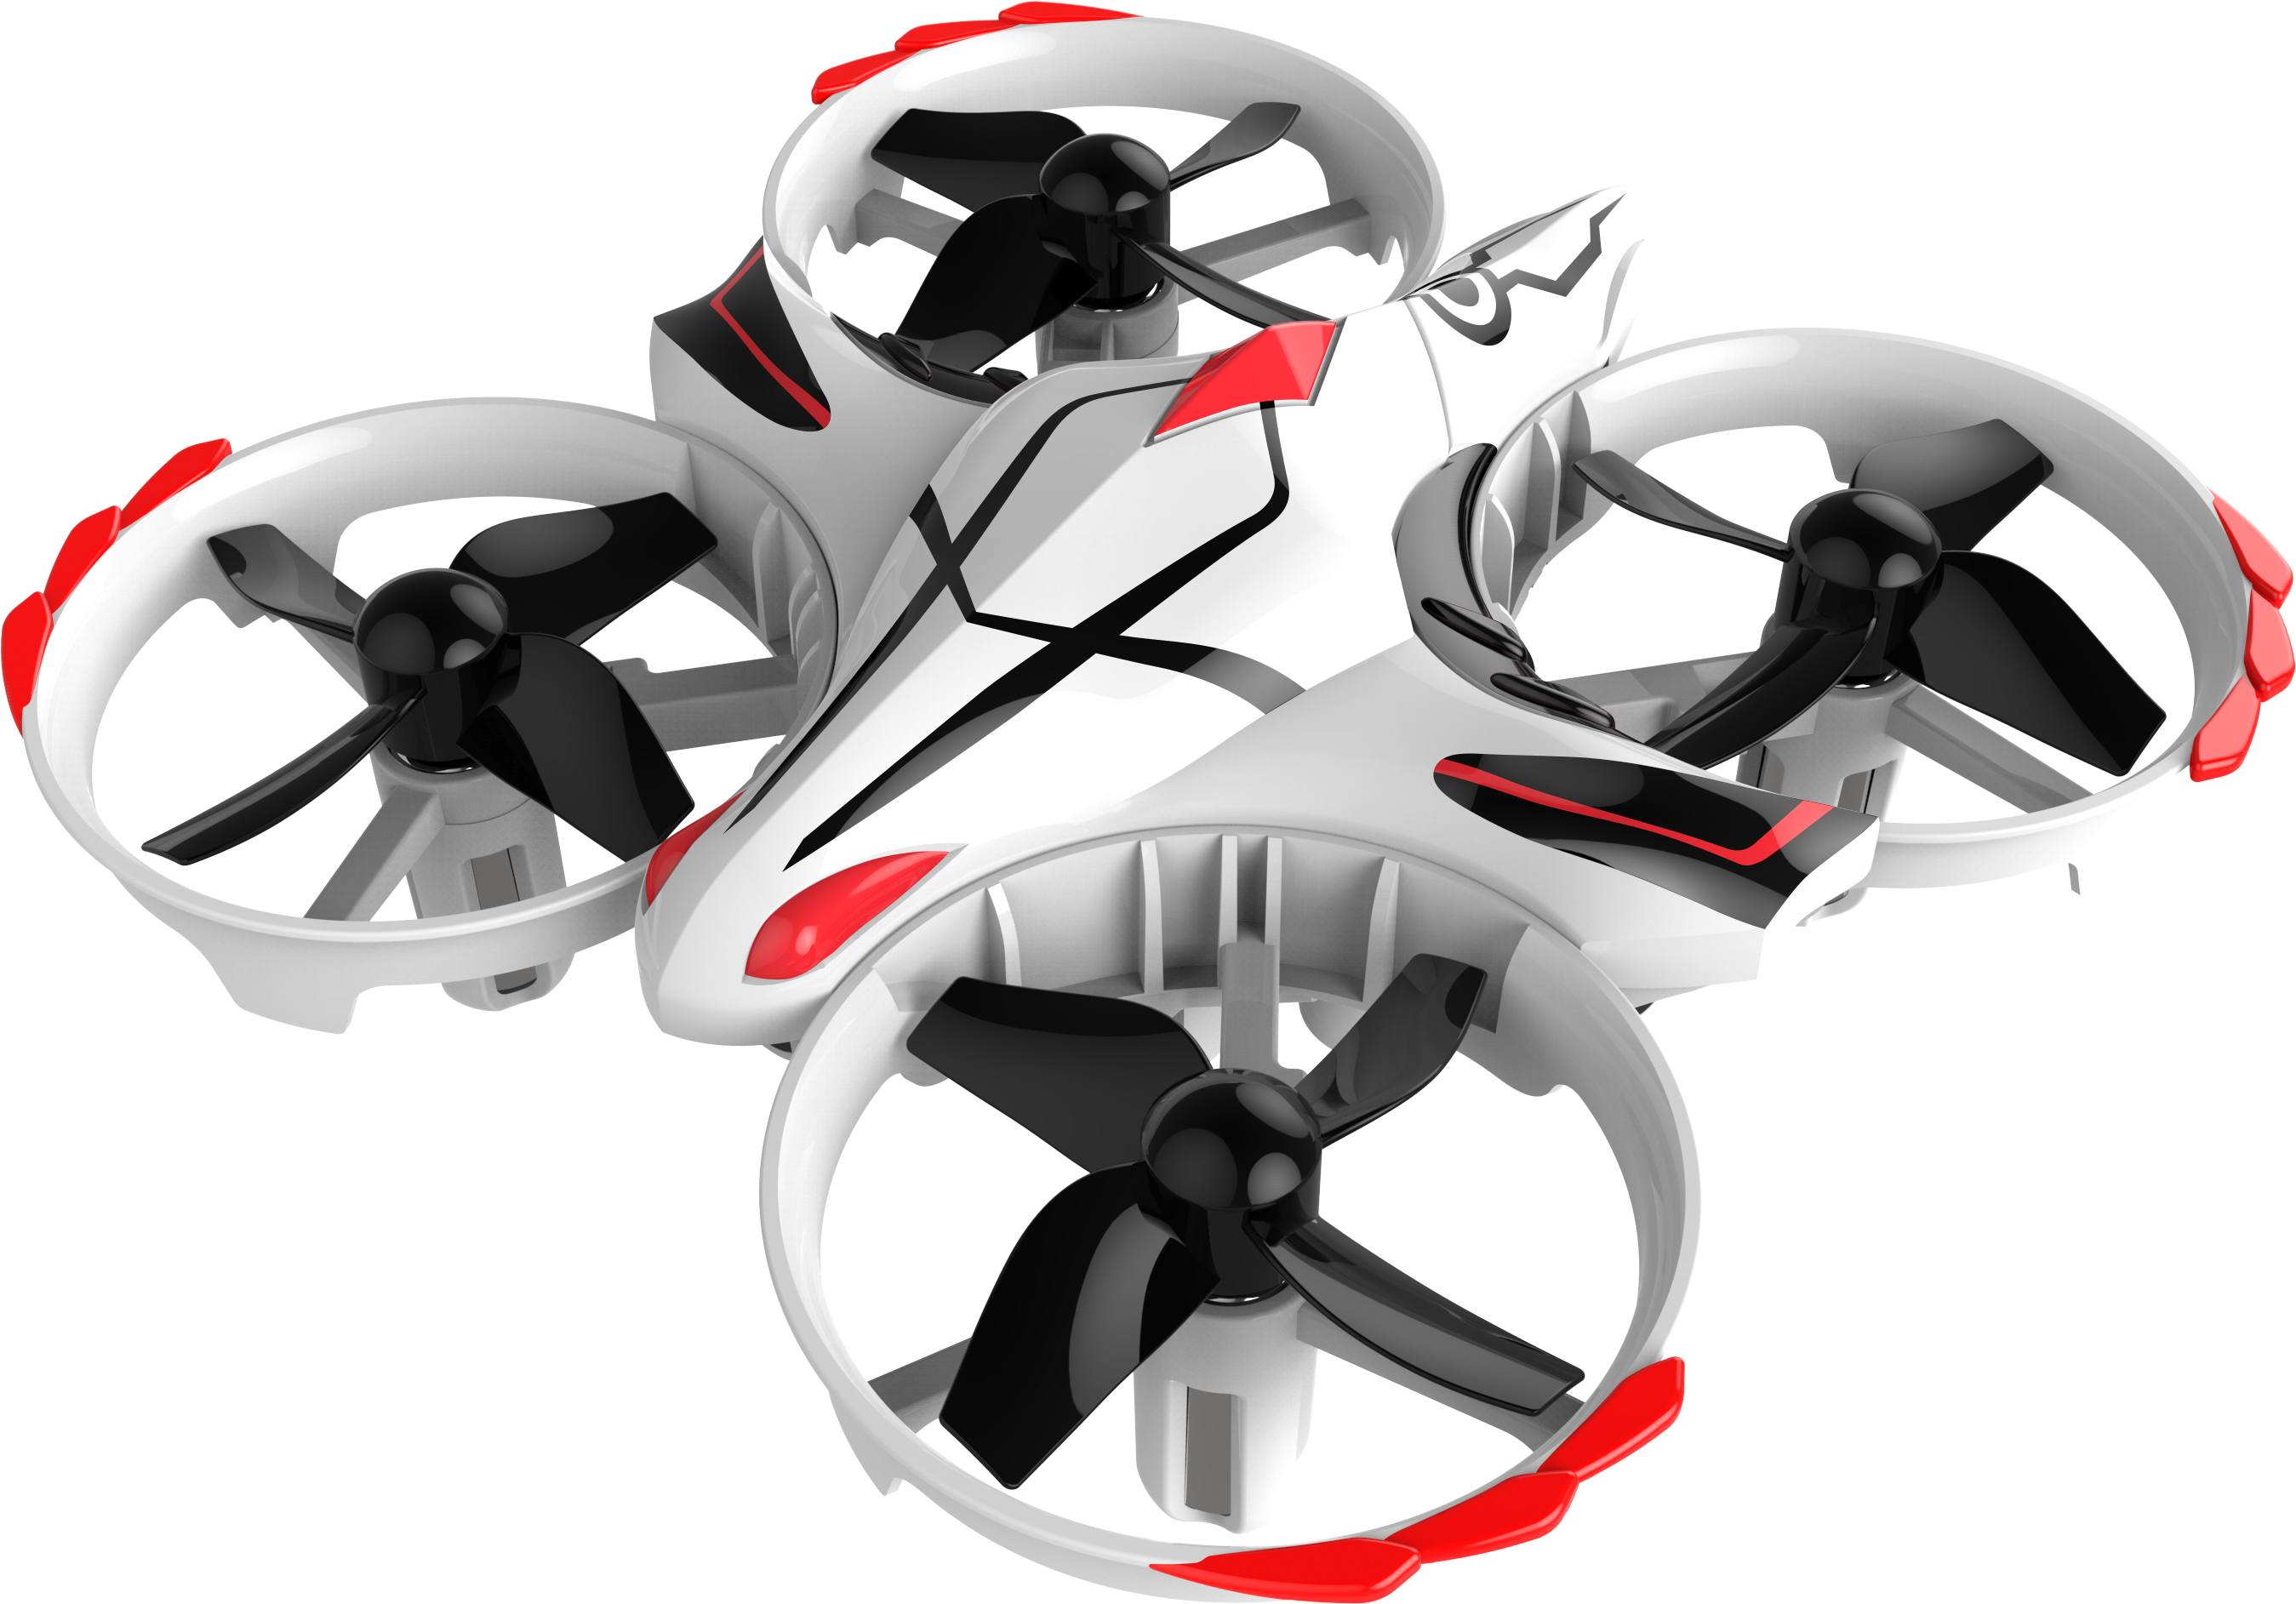 RH81 2.4G Gesture Remote Control Drone Infrared Sensor Induction Quadcopter Fixed Four-axis Interactive Gesture Sensing Plane white